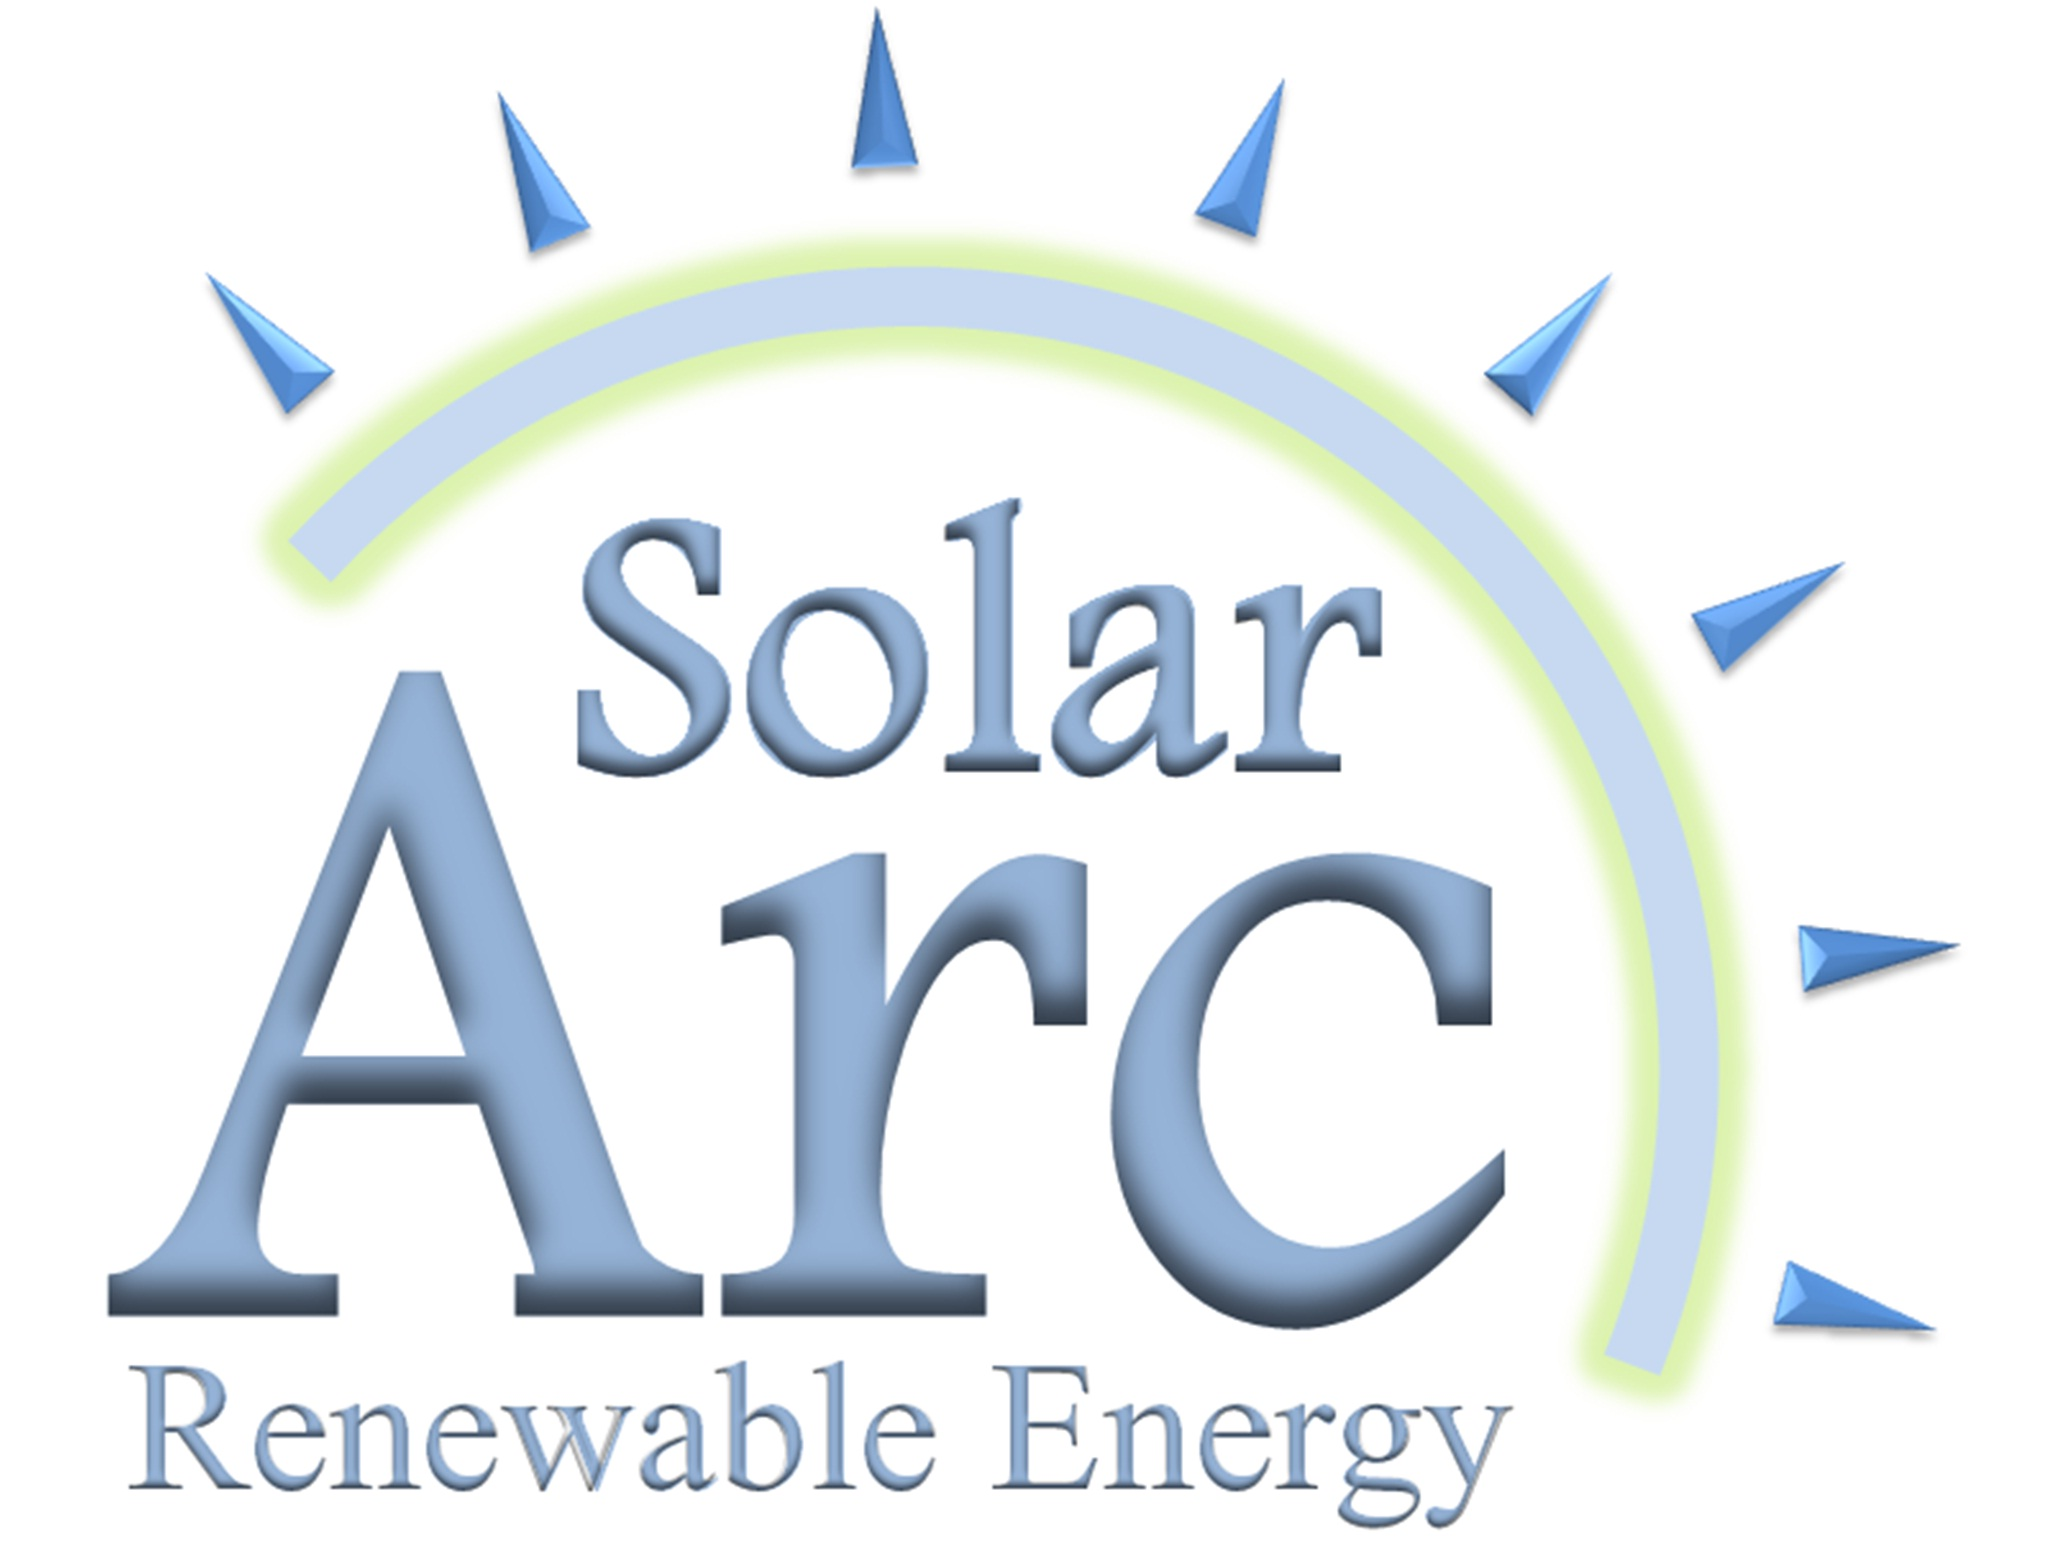 ArcSolar Renewable Energy